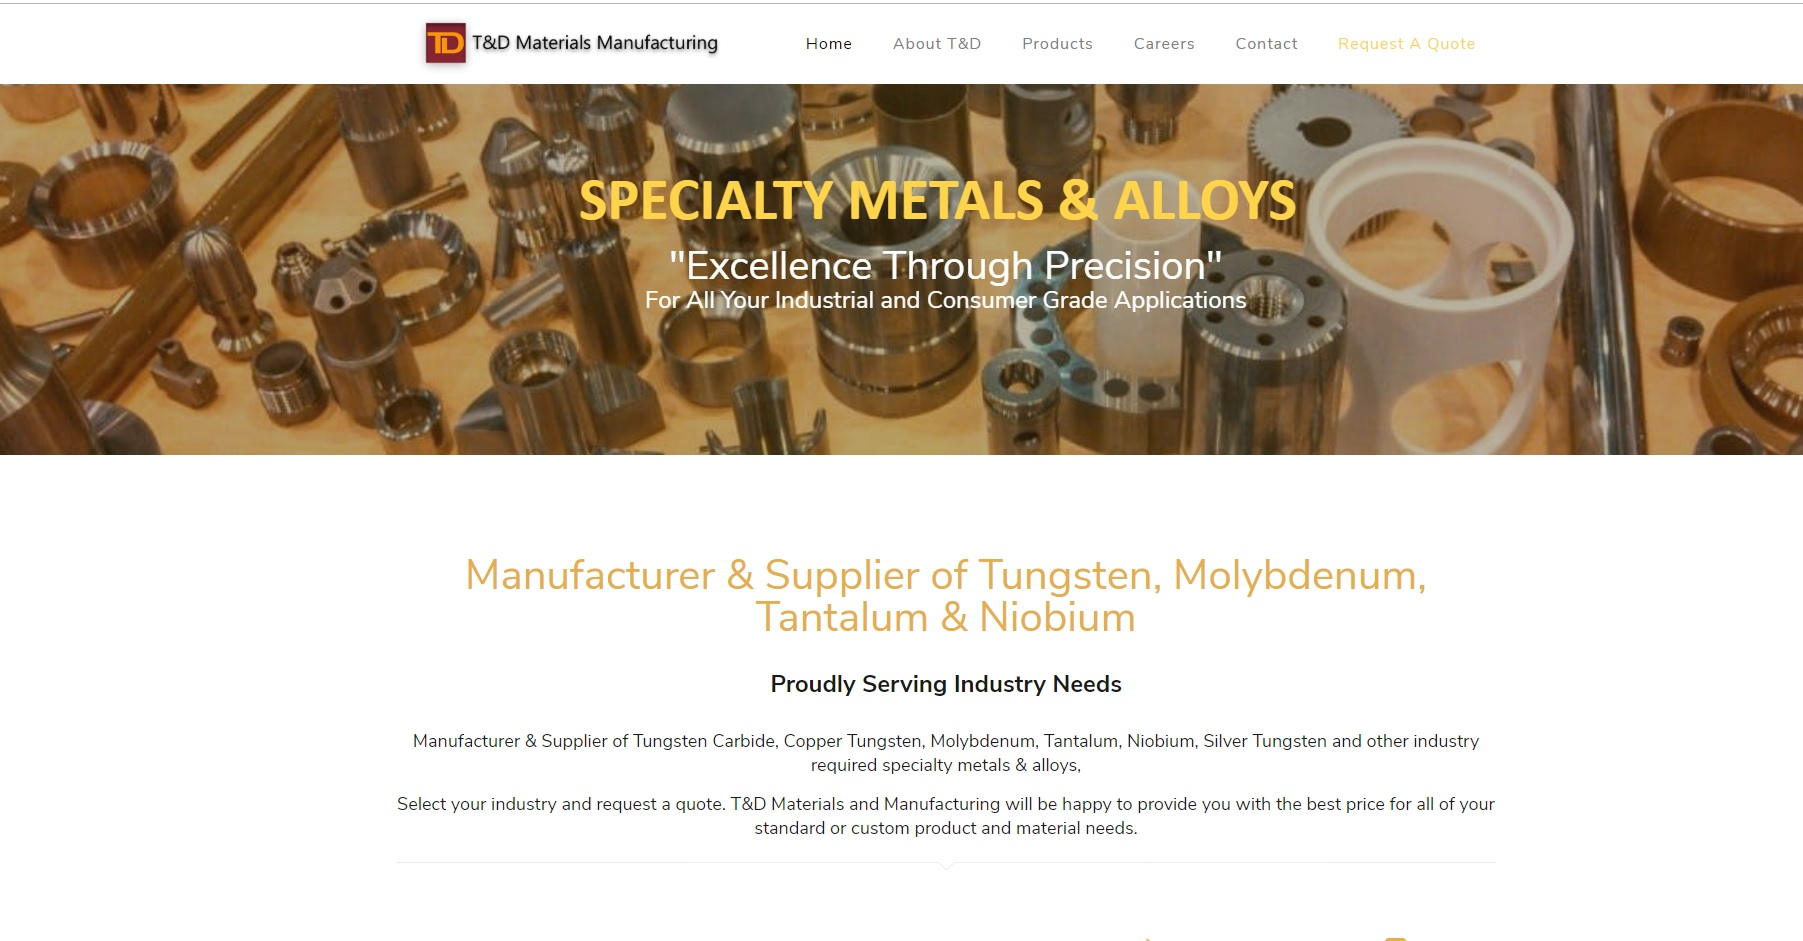 T&D Materials Manufacturing